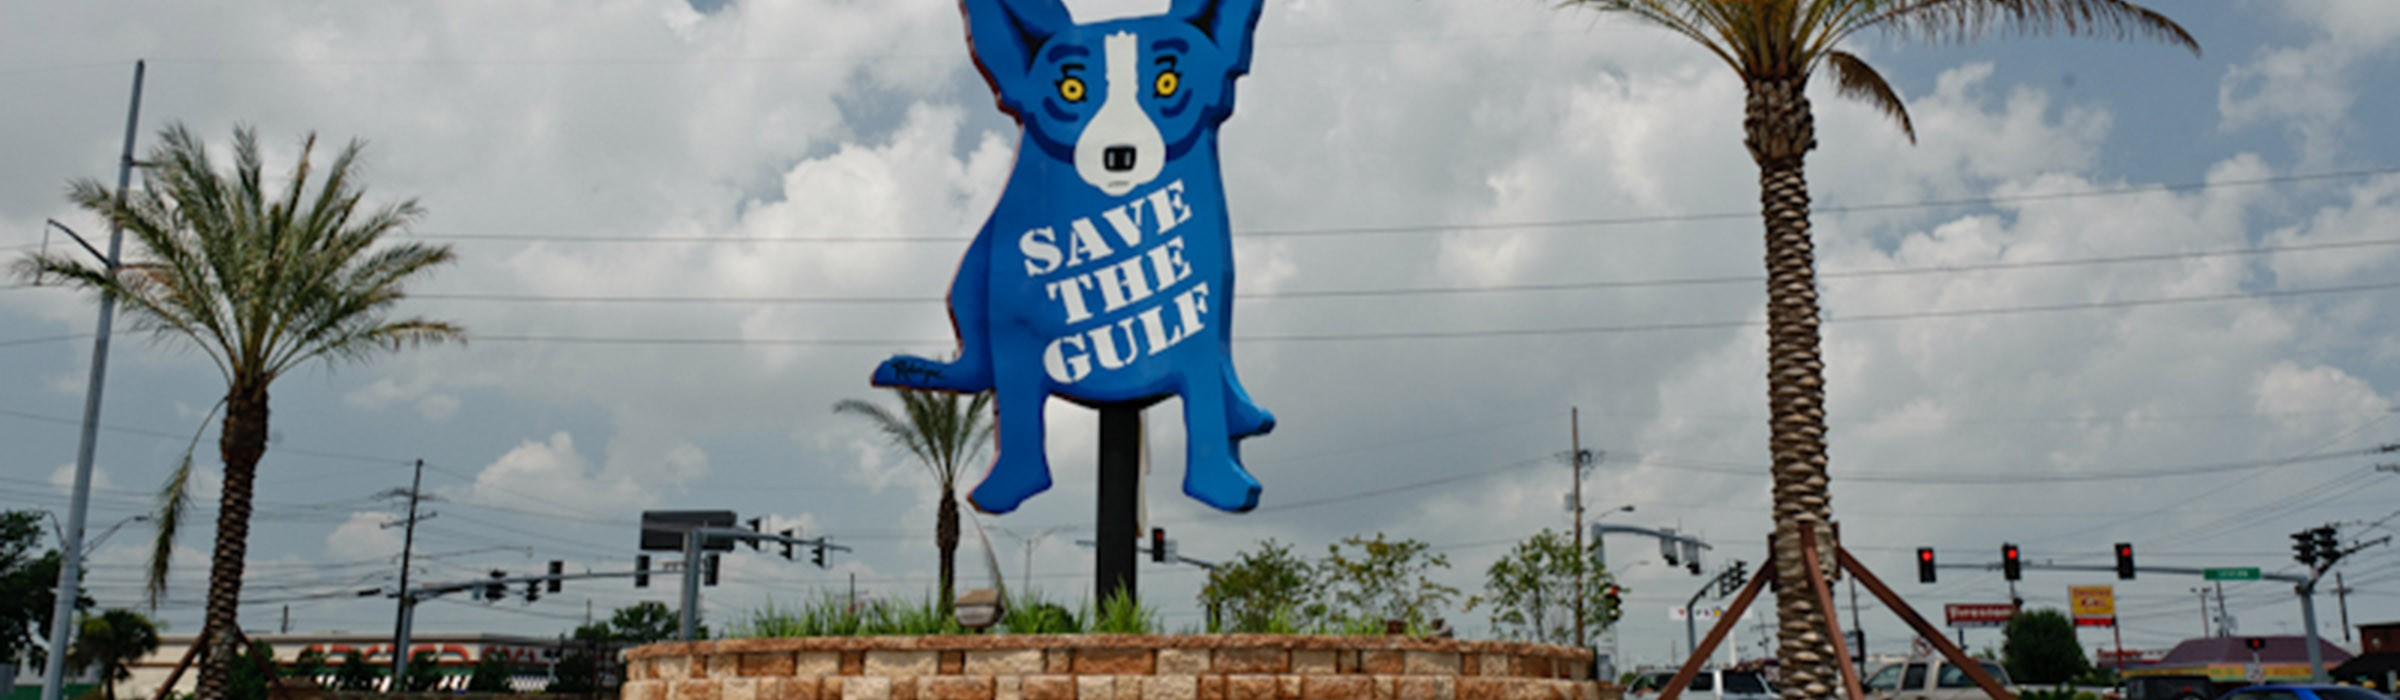 Blue Dog - Save the Gulf